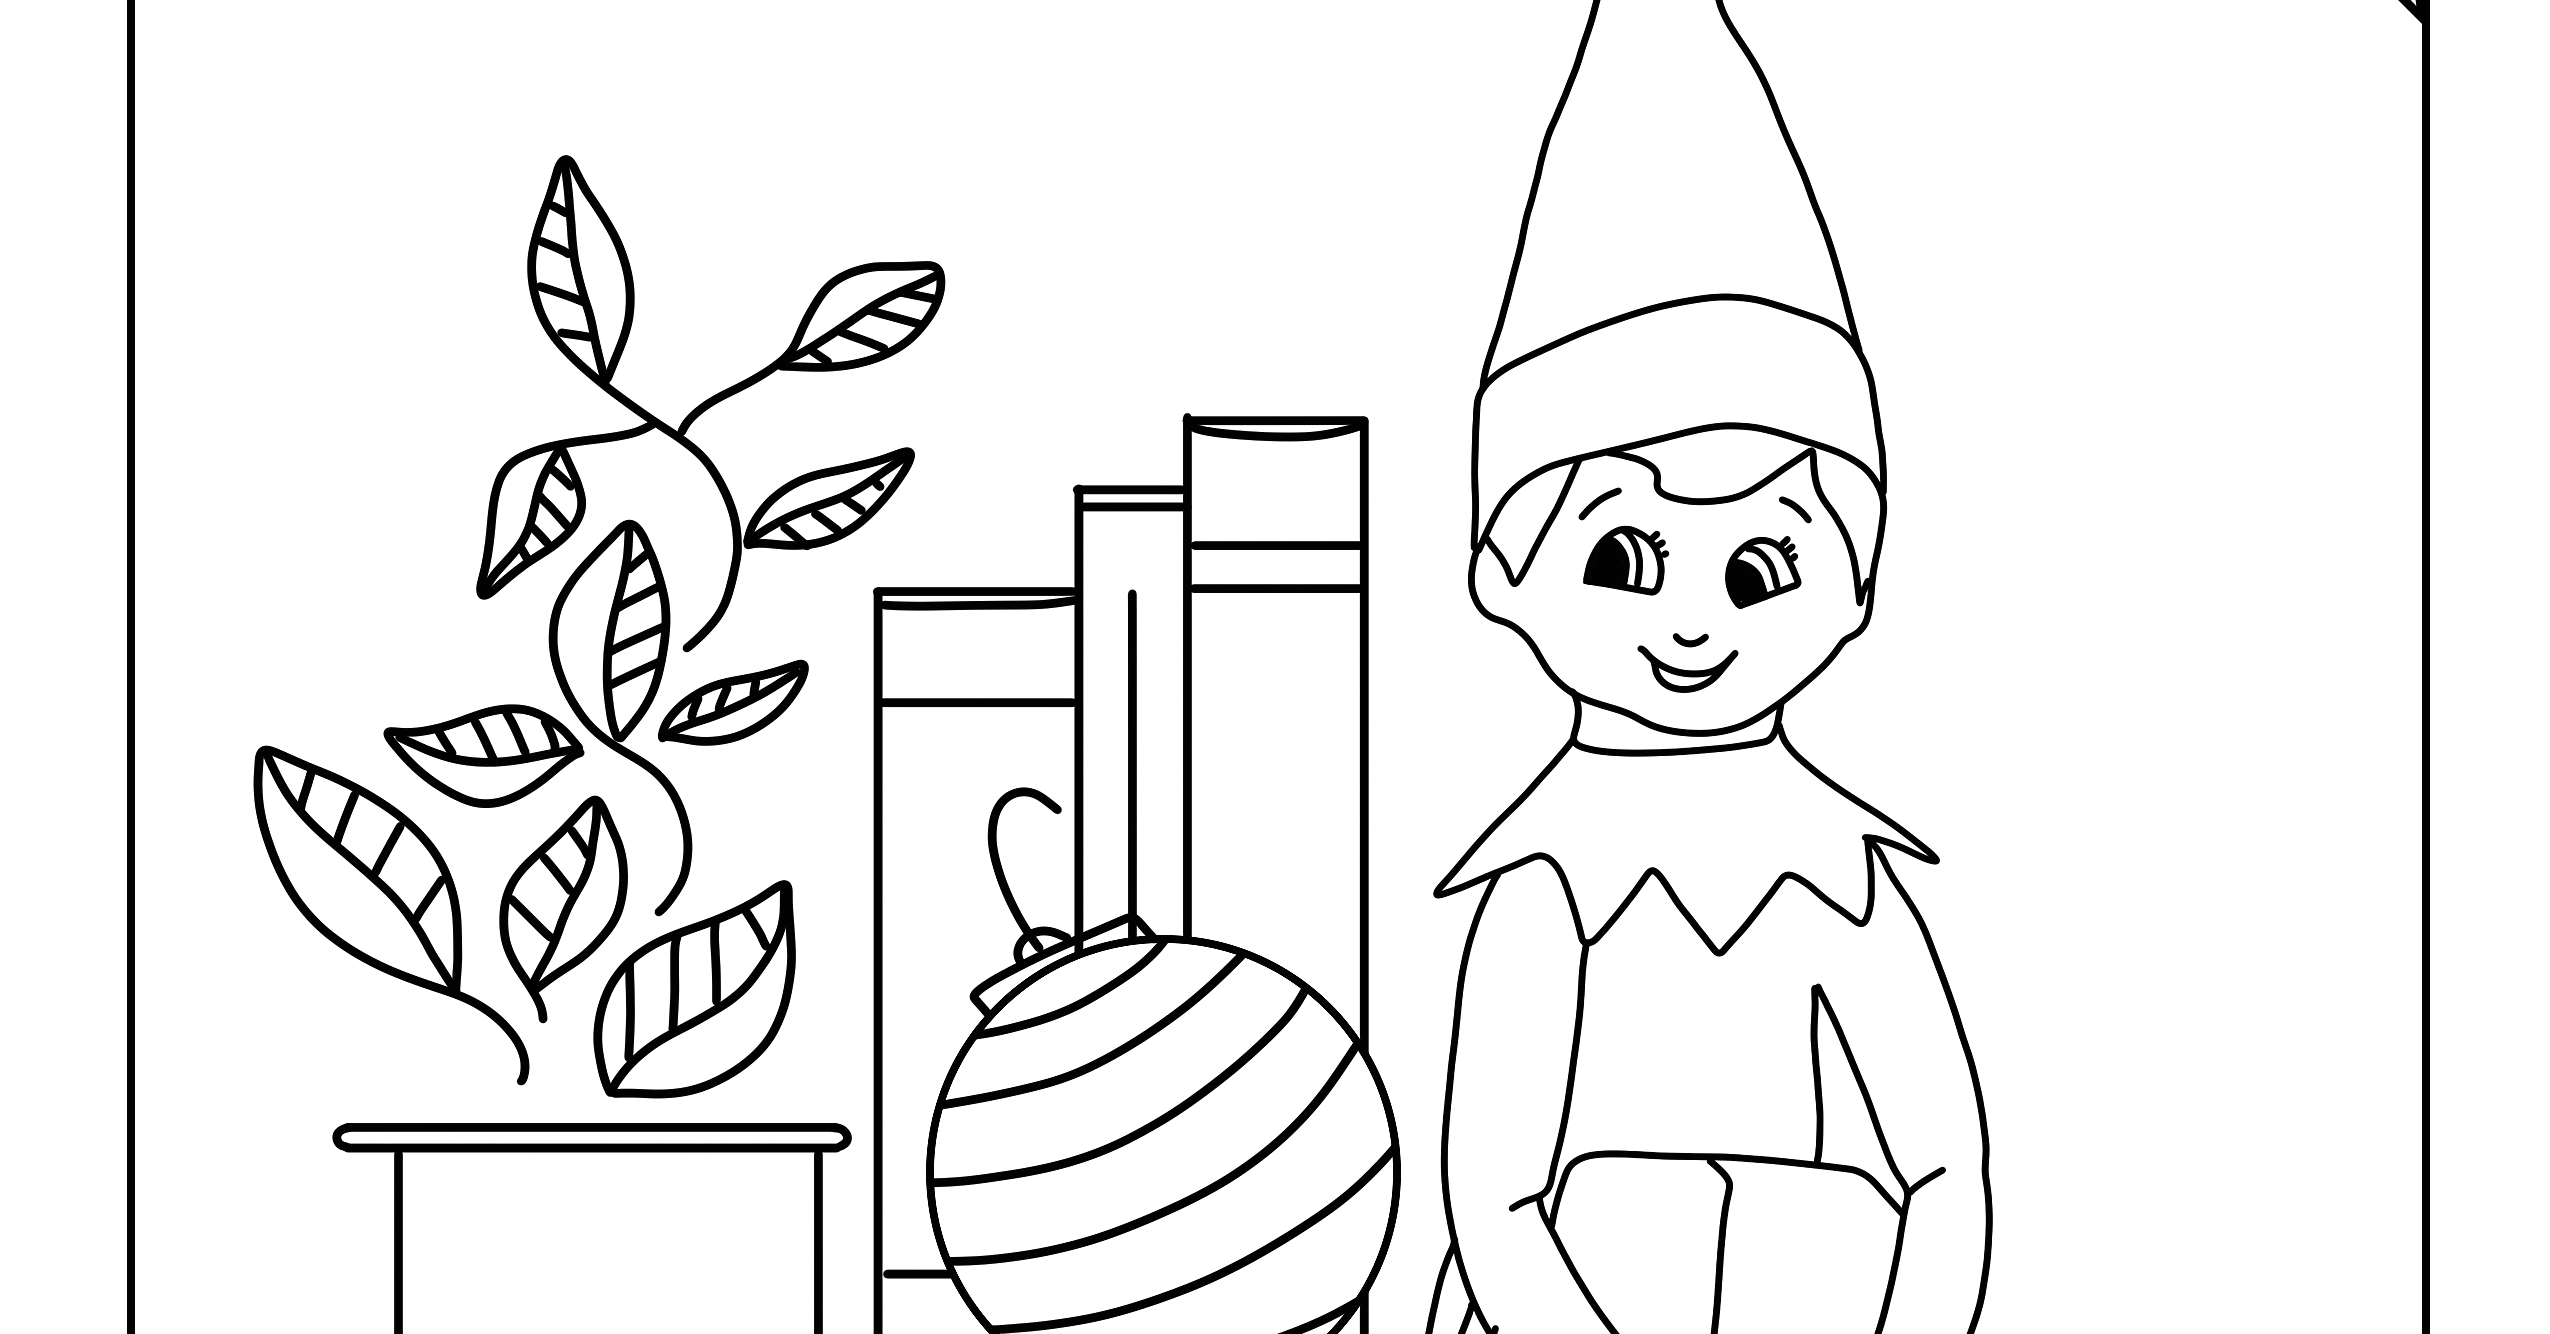 elf on the shelf coloring pages to print this holiday season